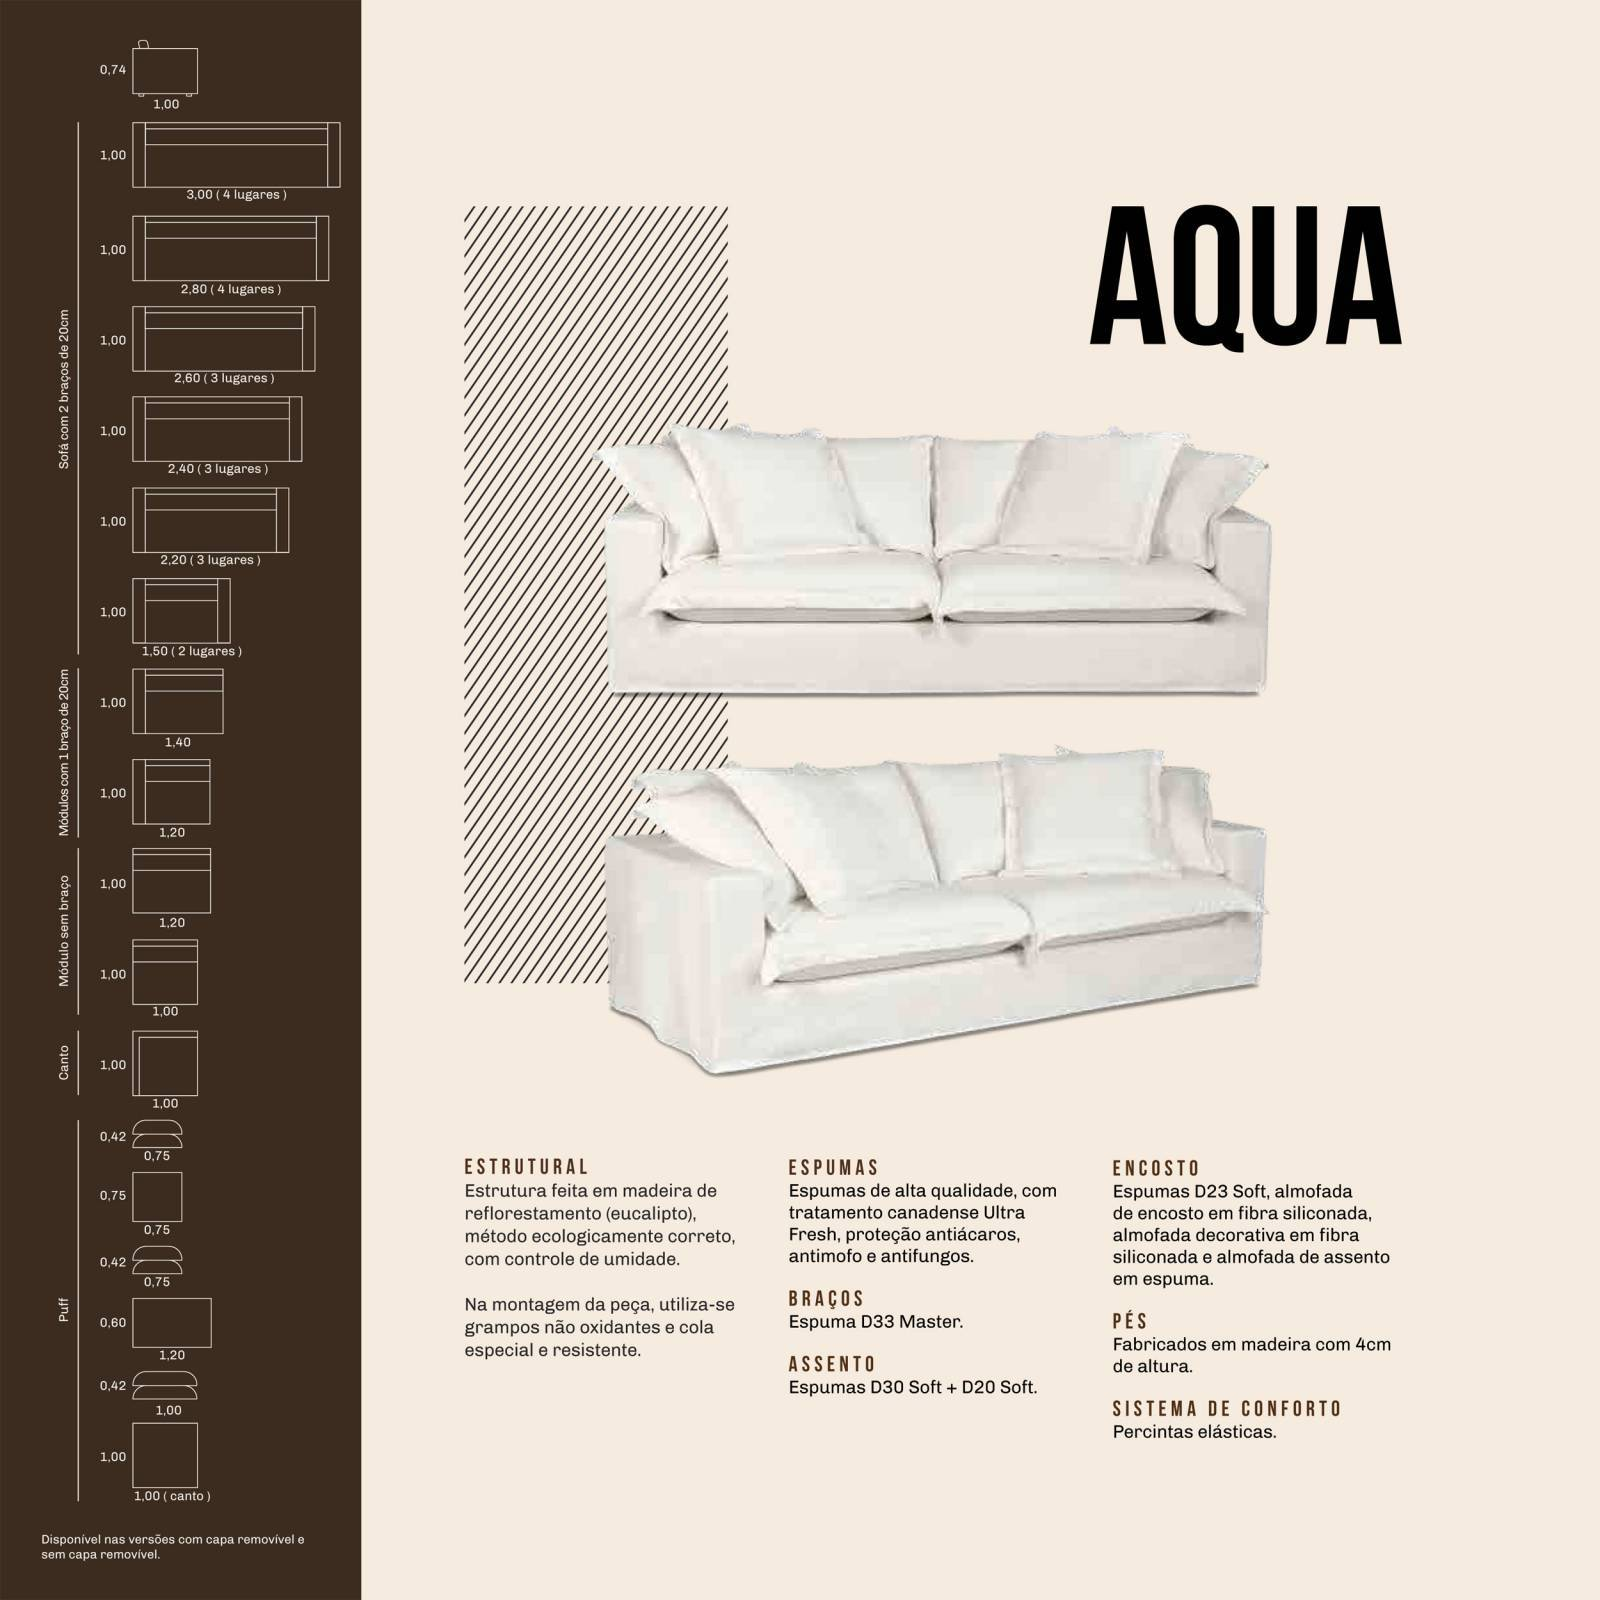 Estofado Aqua Mannes - All Home